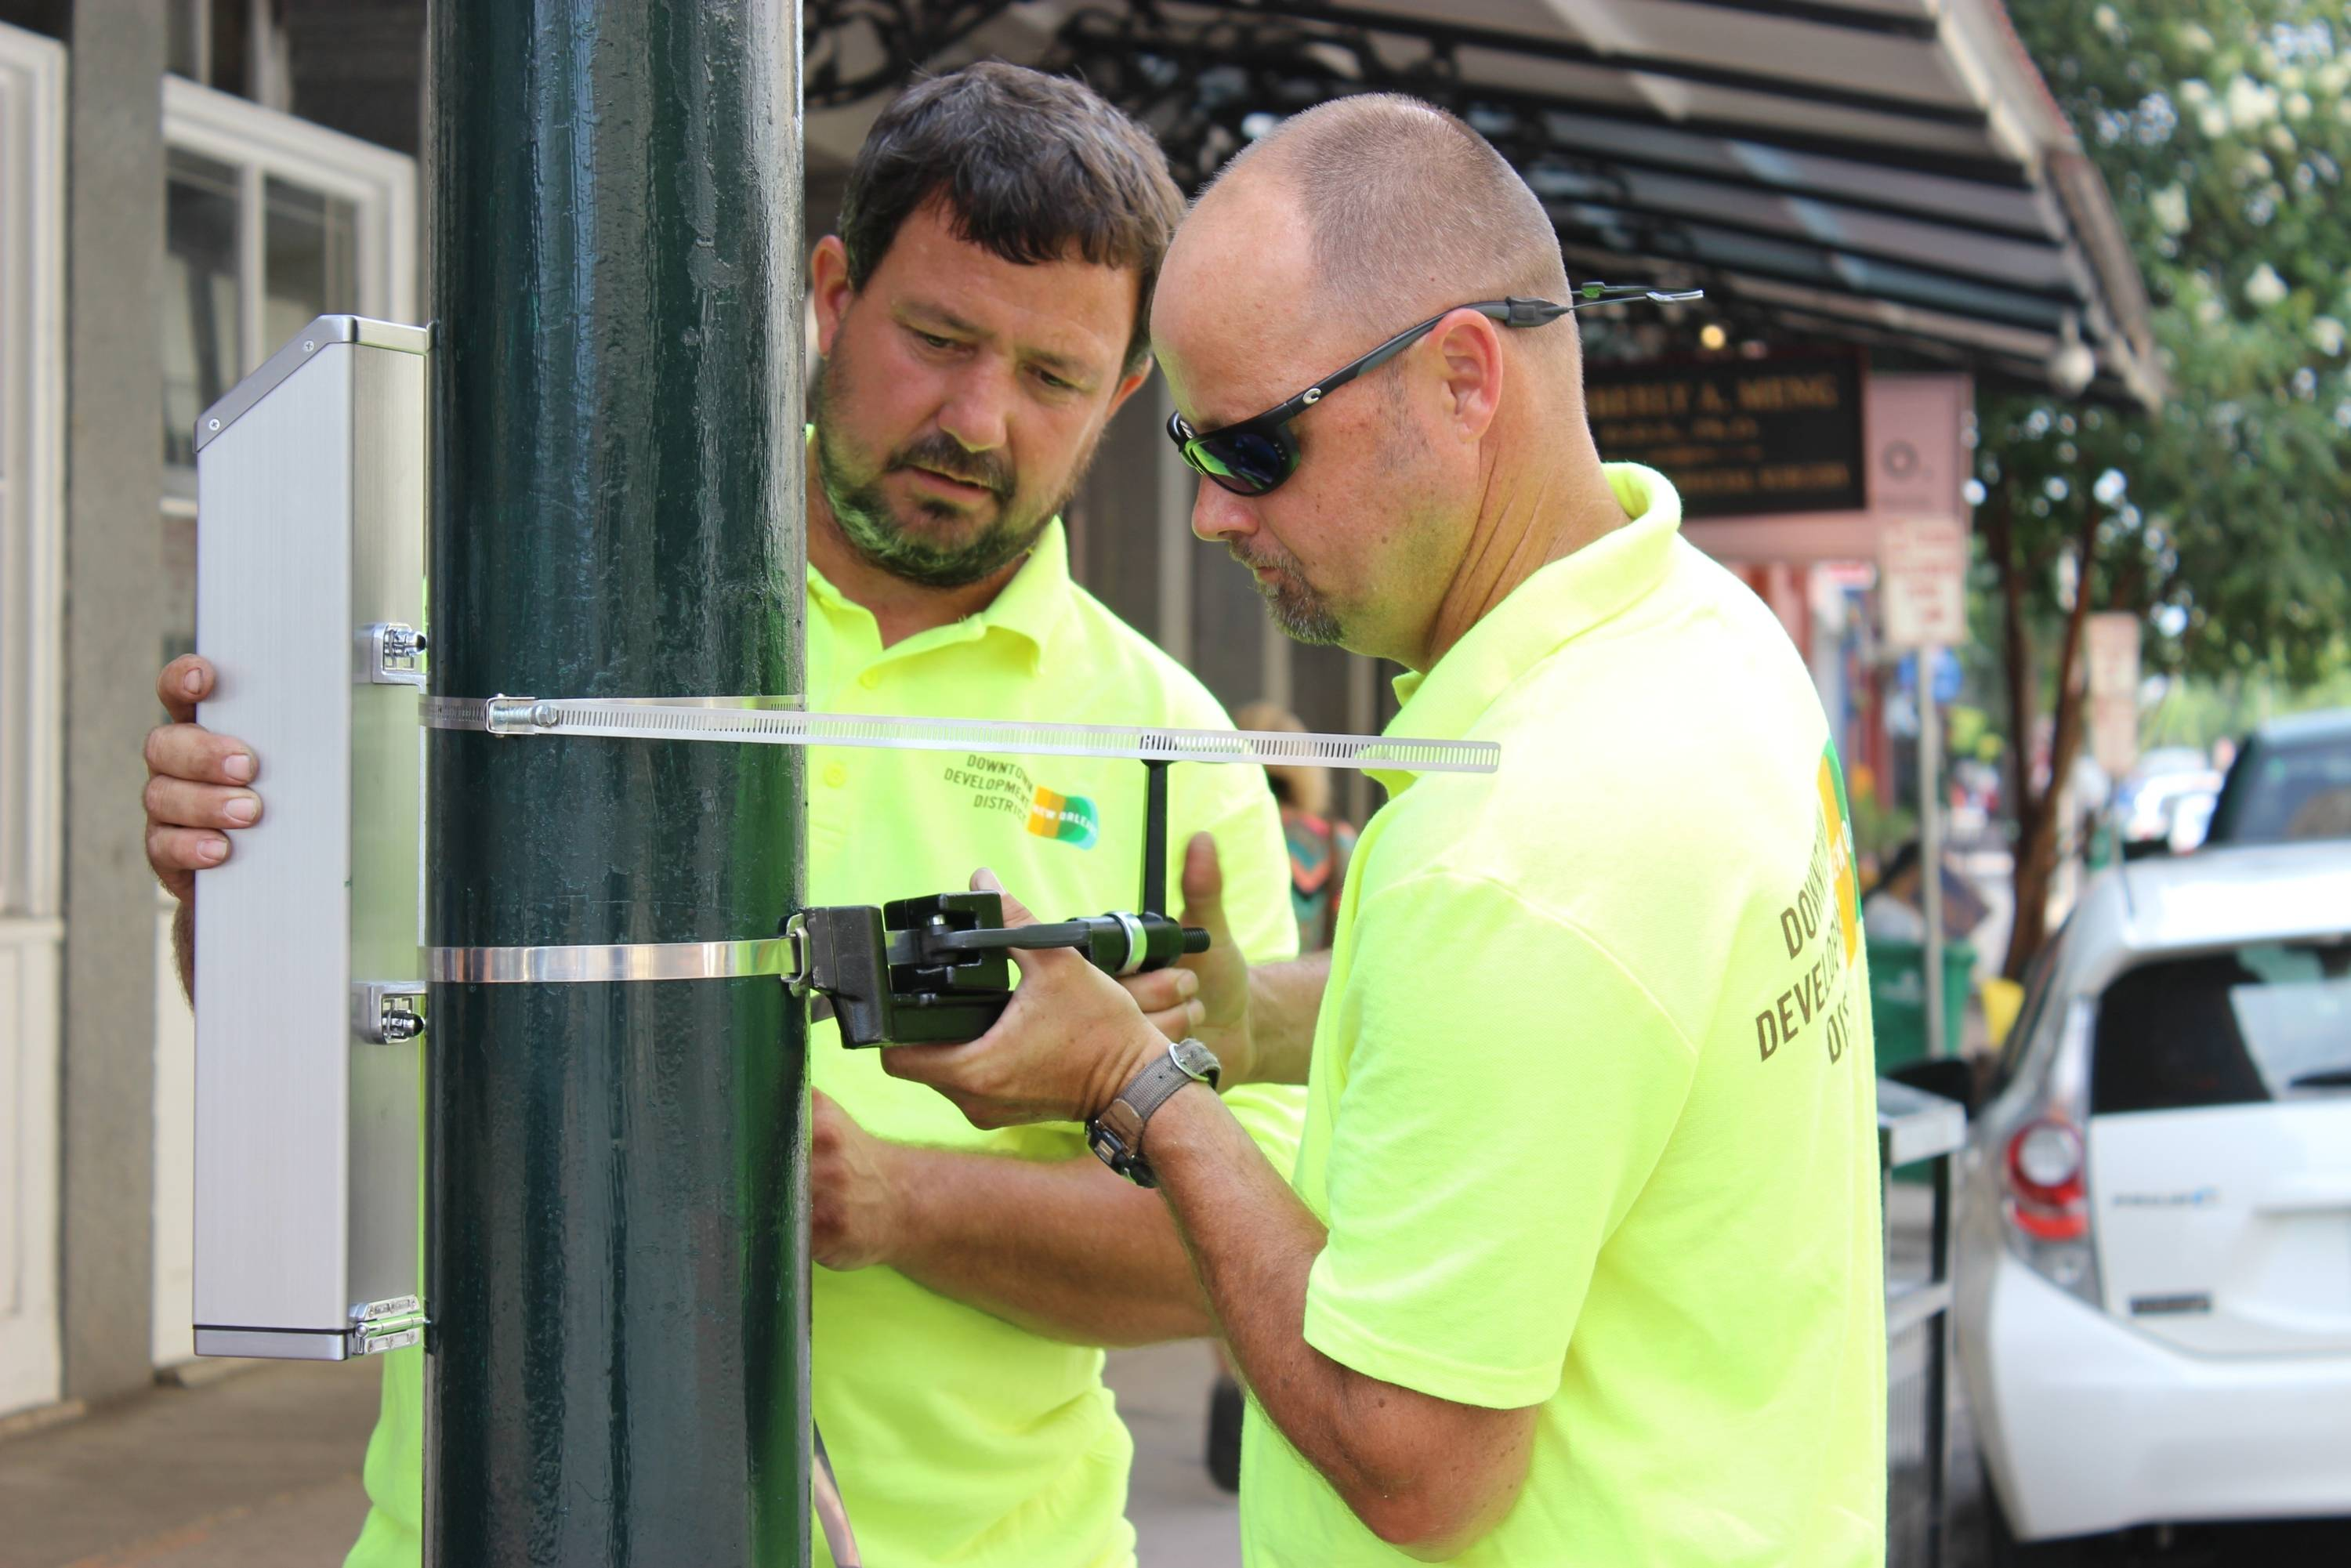 Dale Alvin, right, tightens the strap holding a cigarette butt recycling container to a lamp post in New Orleans' Warehouse District.